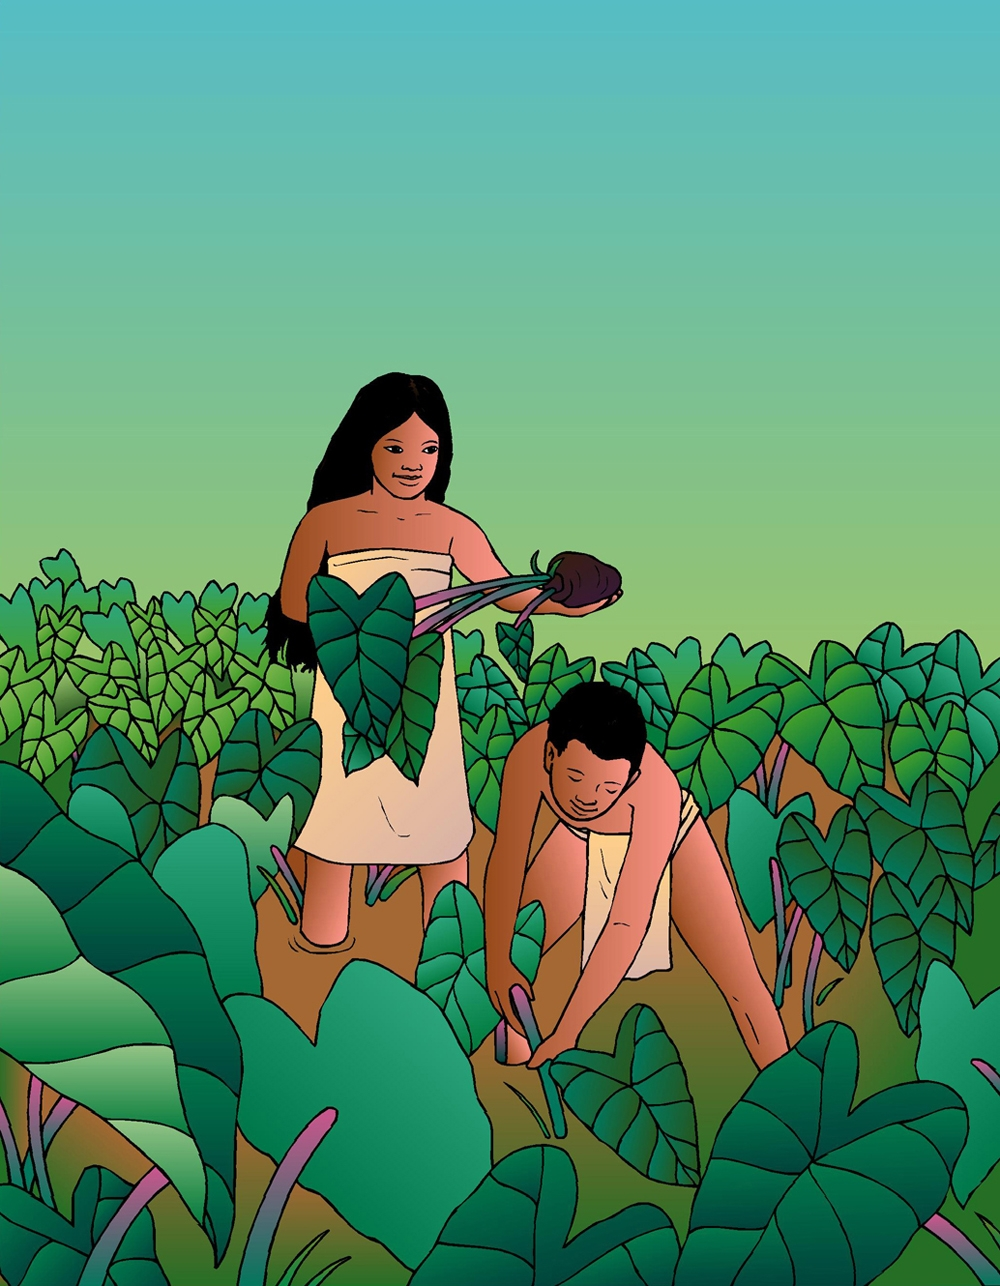 [Harvesting kalo] Artwork by R. Y. Racoma.